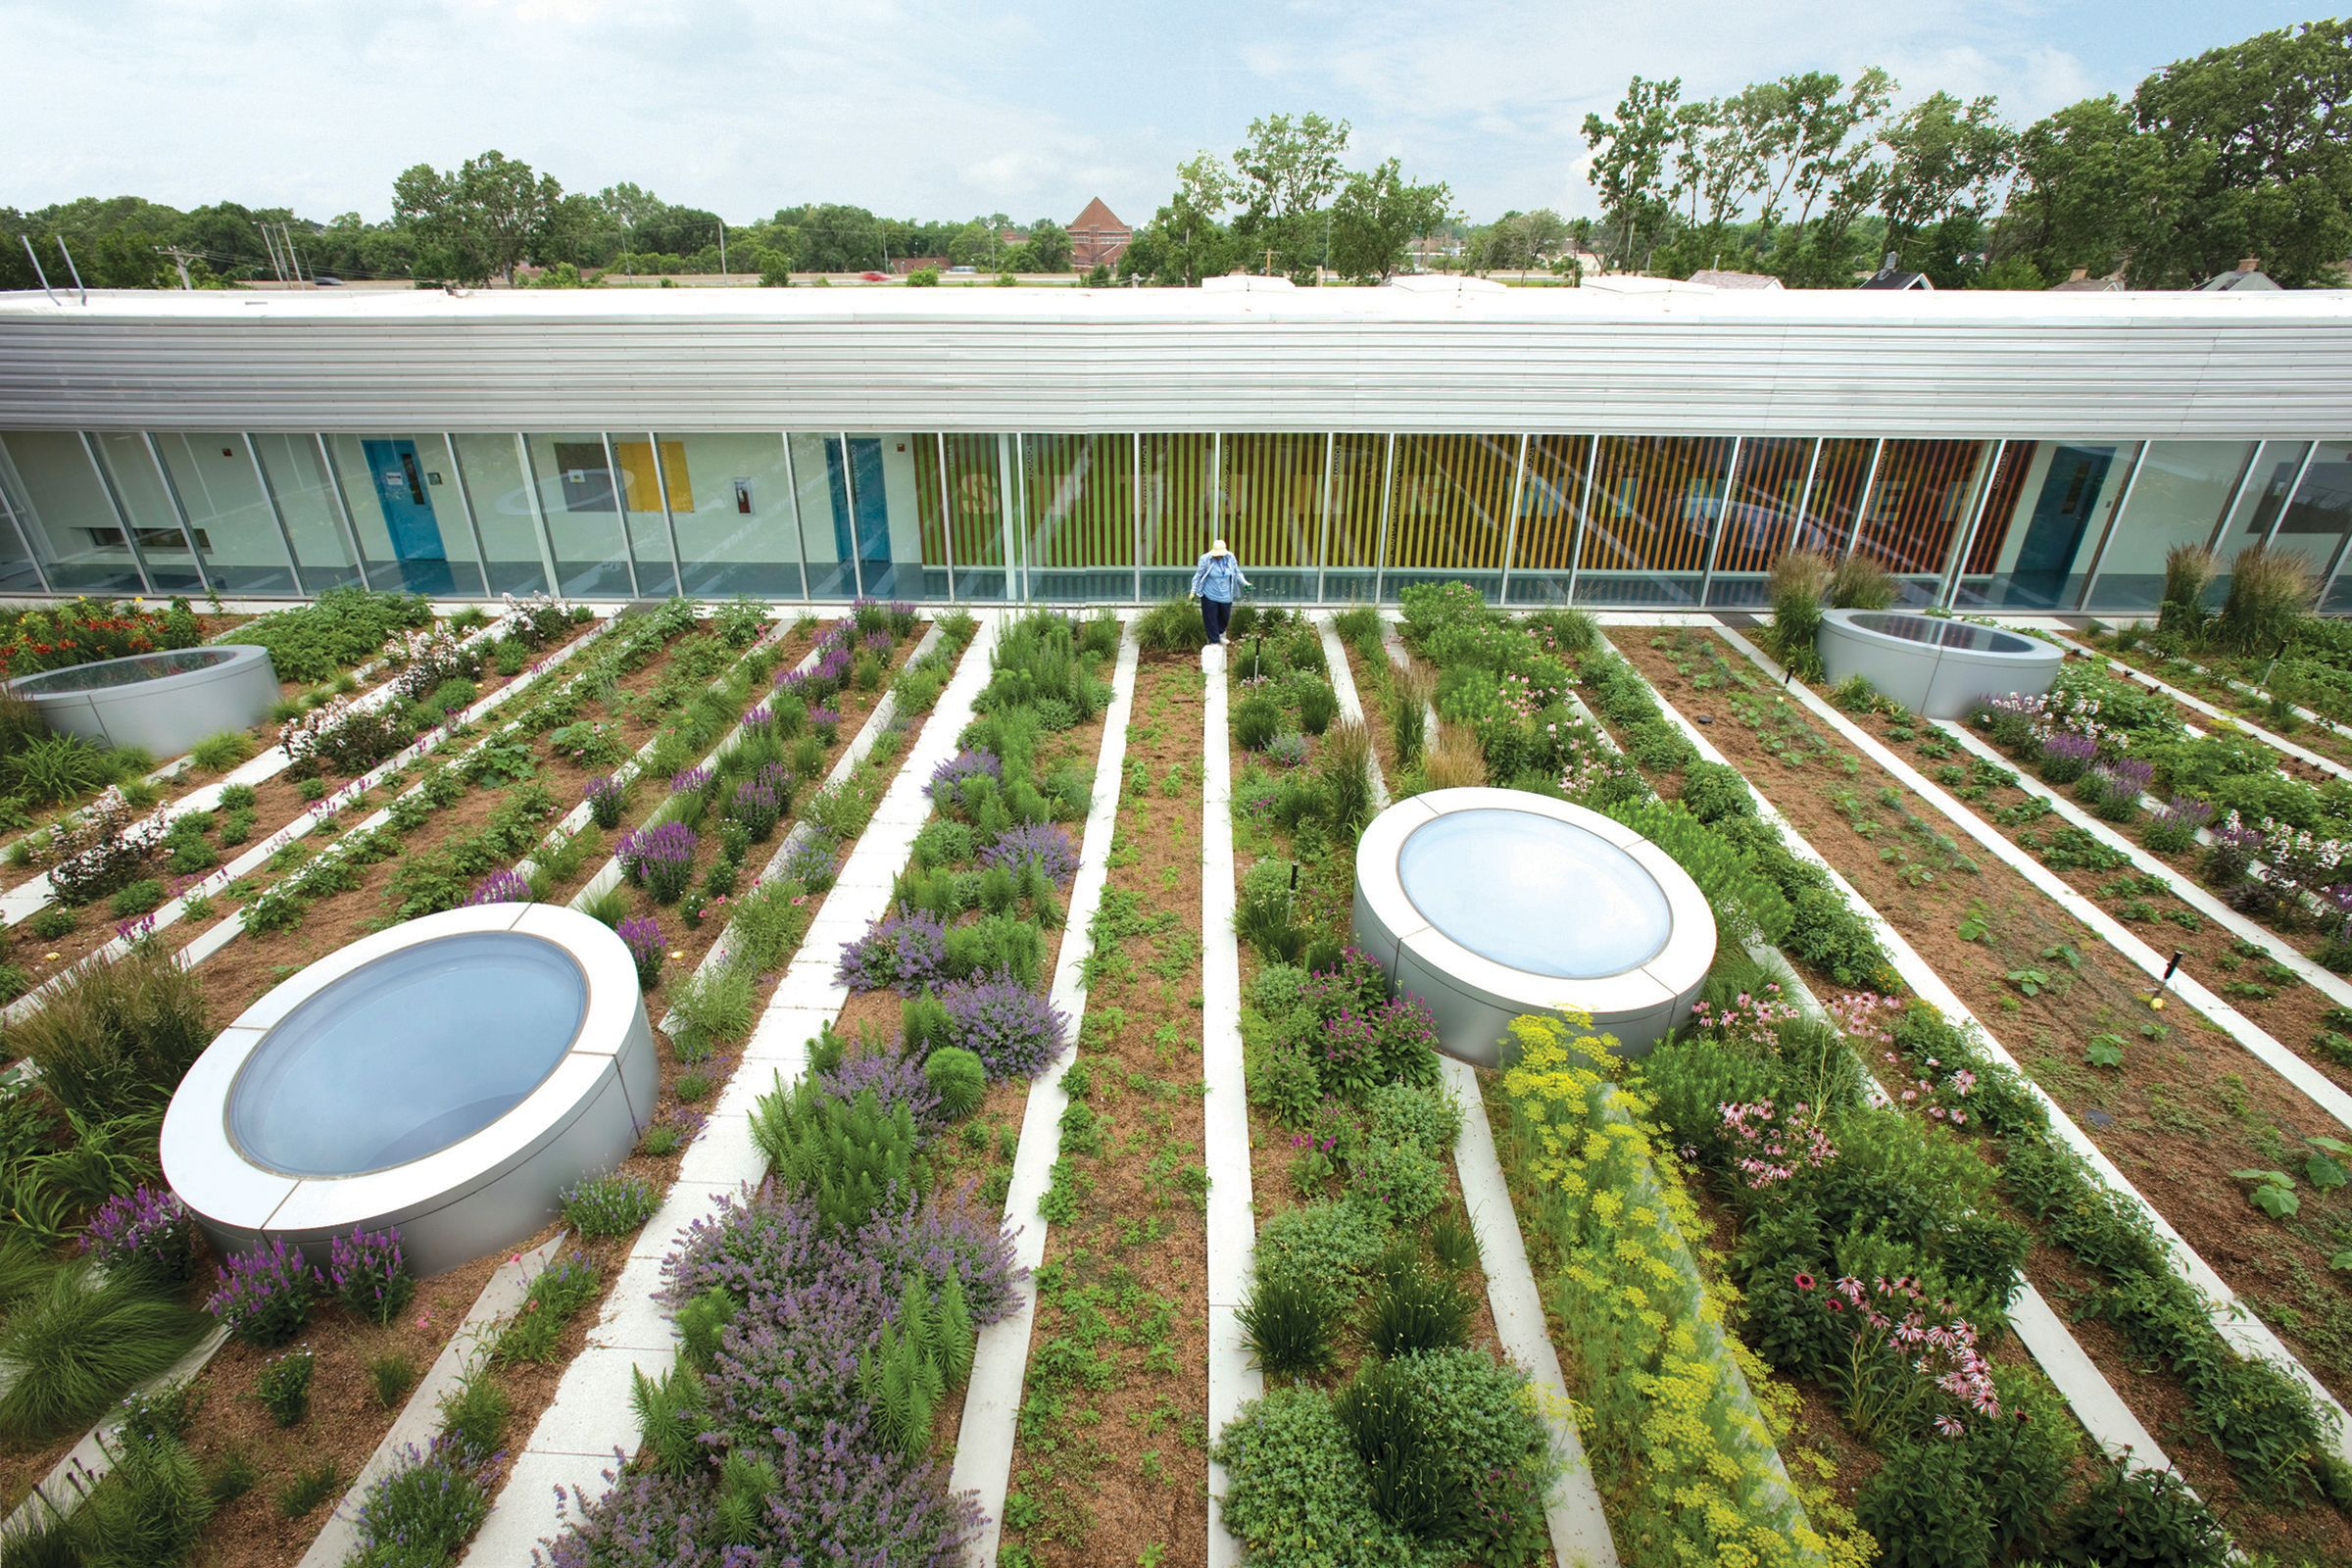 rooftop haven for urban agriculture chicago usa hoerr schaudt landscape architects chicago